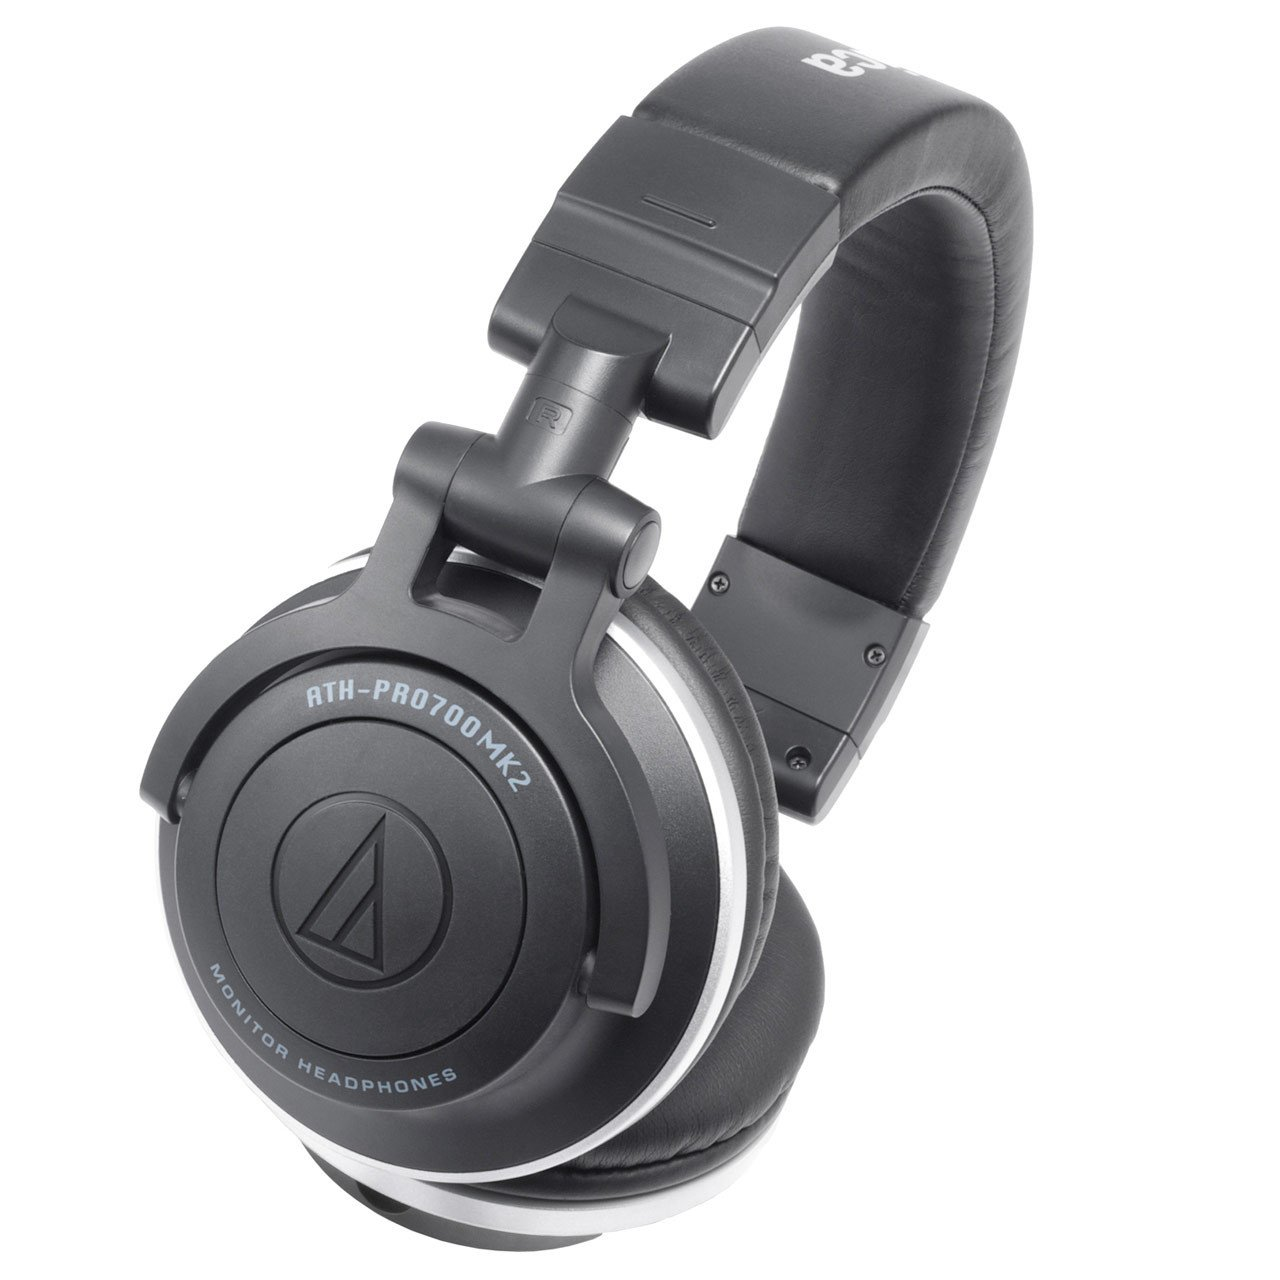 Closed Headphones - Audio-Technica ATH-PRO700MK2 Professional DJ Headphones